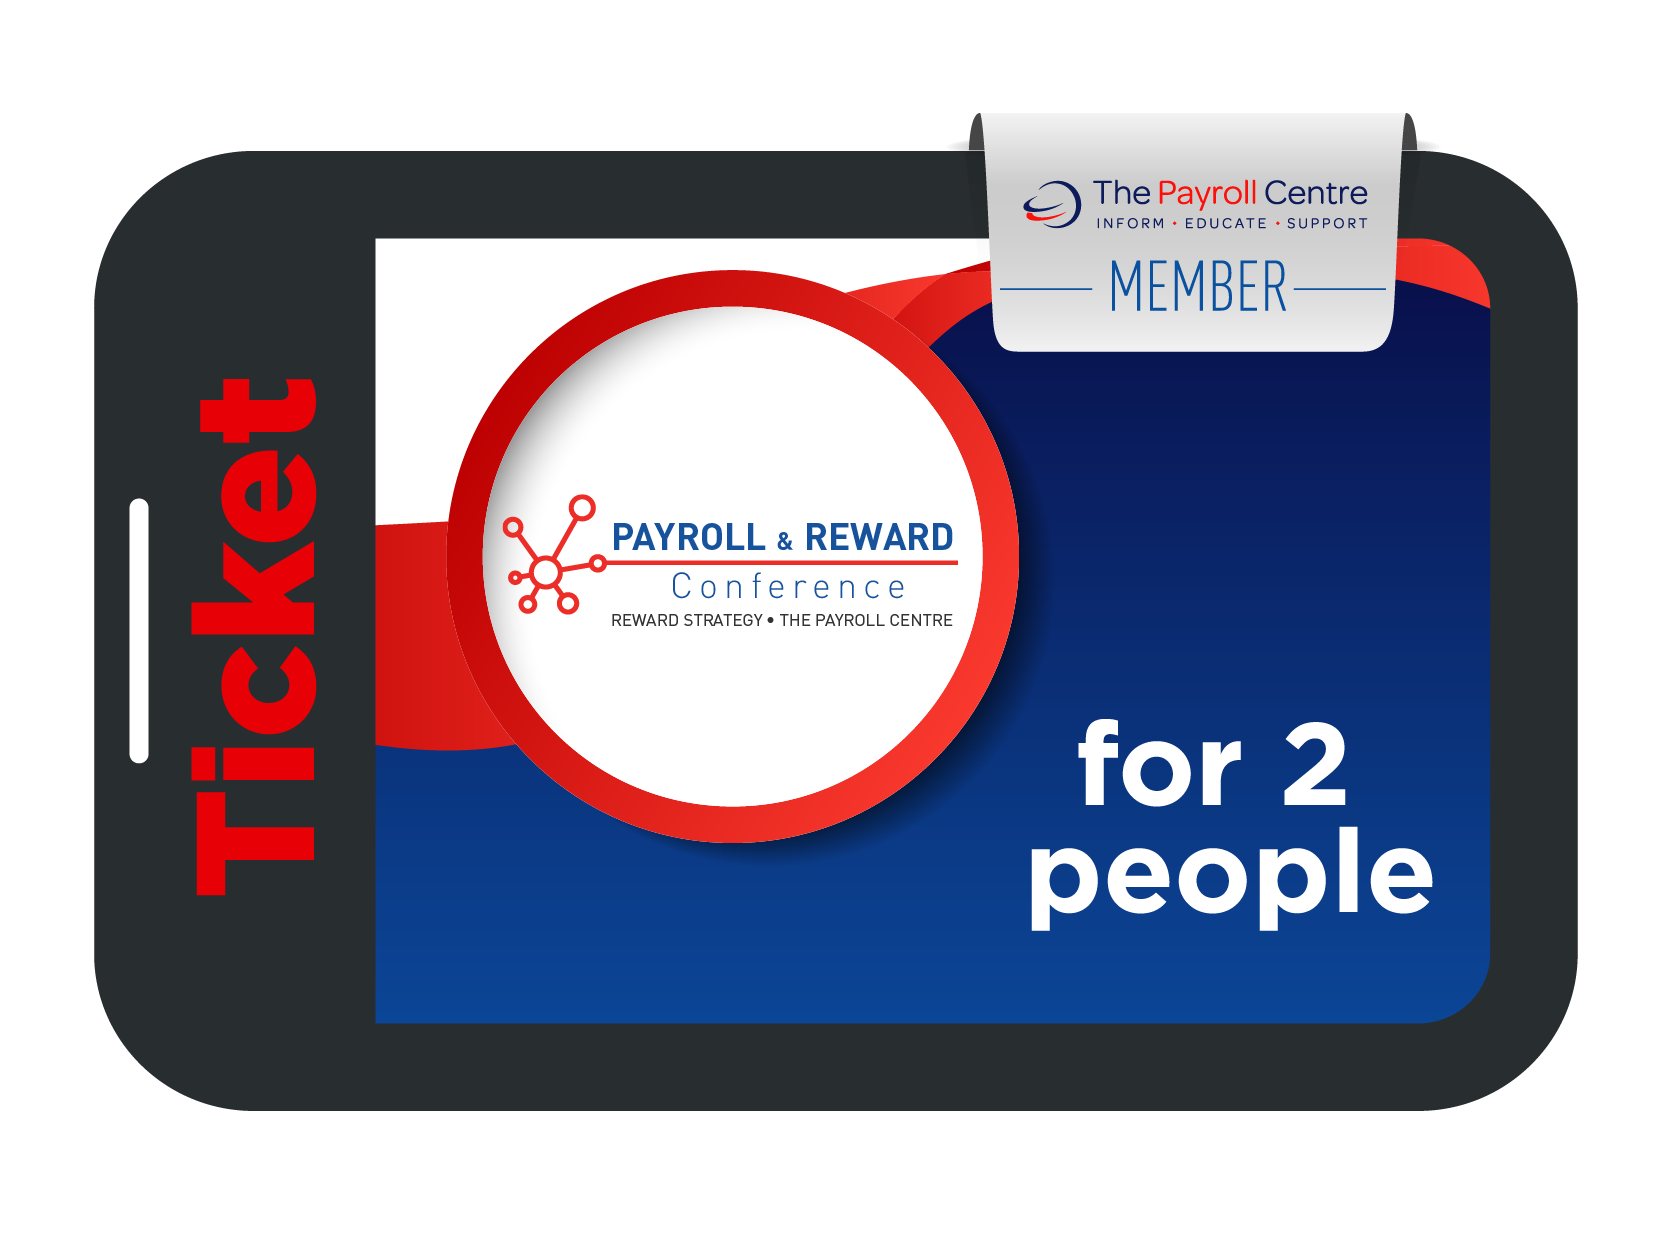 Digital pass: In-house / Client for 2 people - Payroll & Reward Conference 2021 - Payroll Centre member